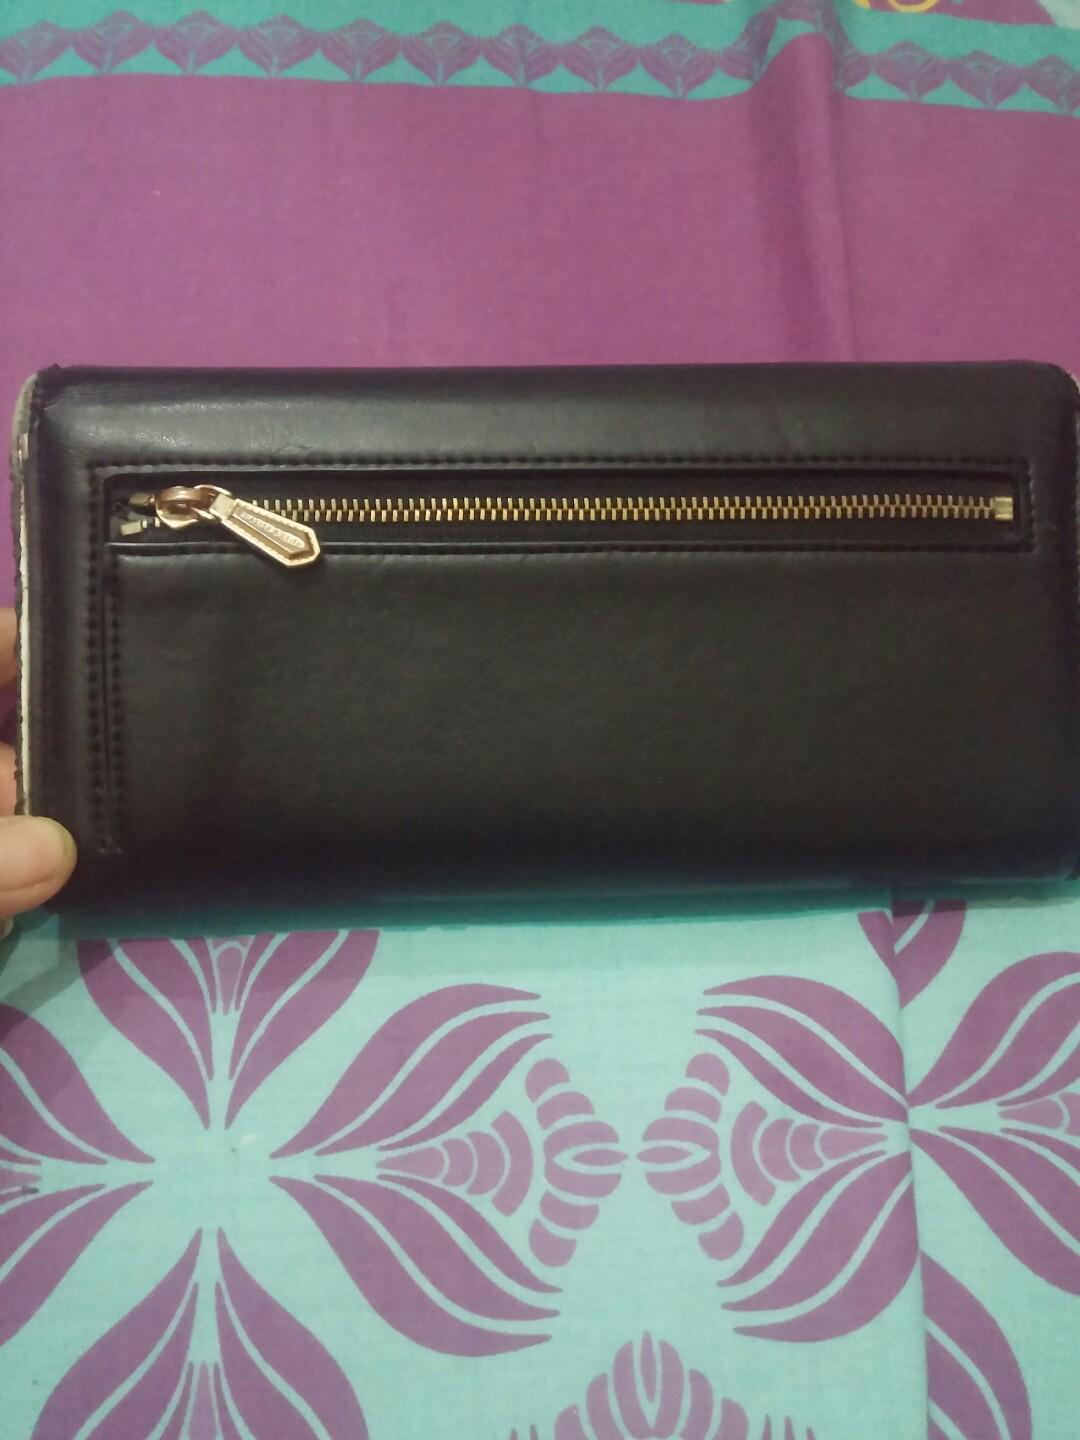 Dompet charles & keith#JAN25